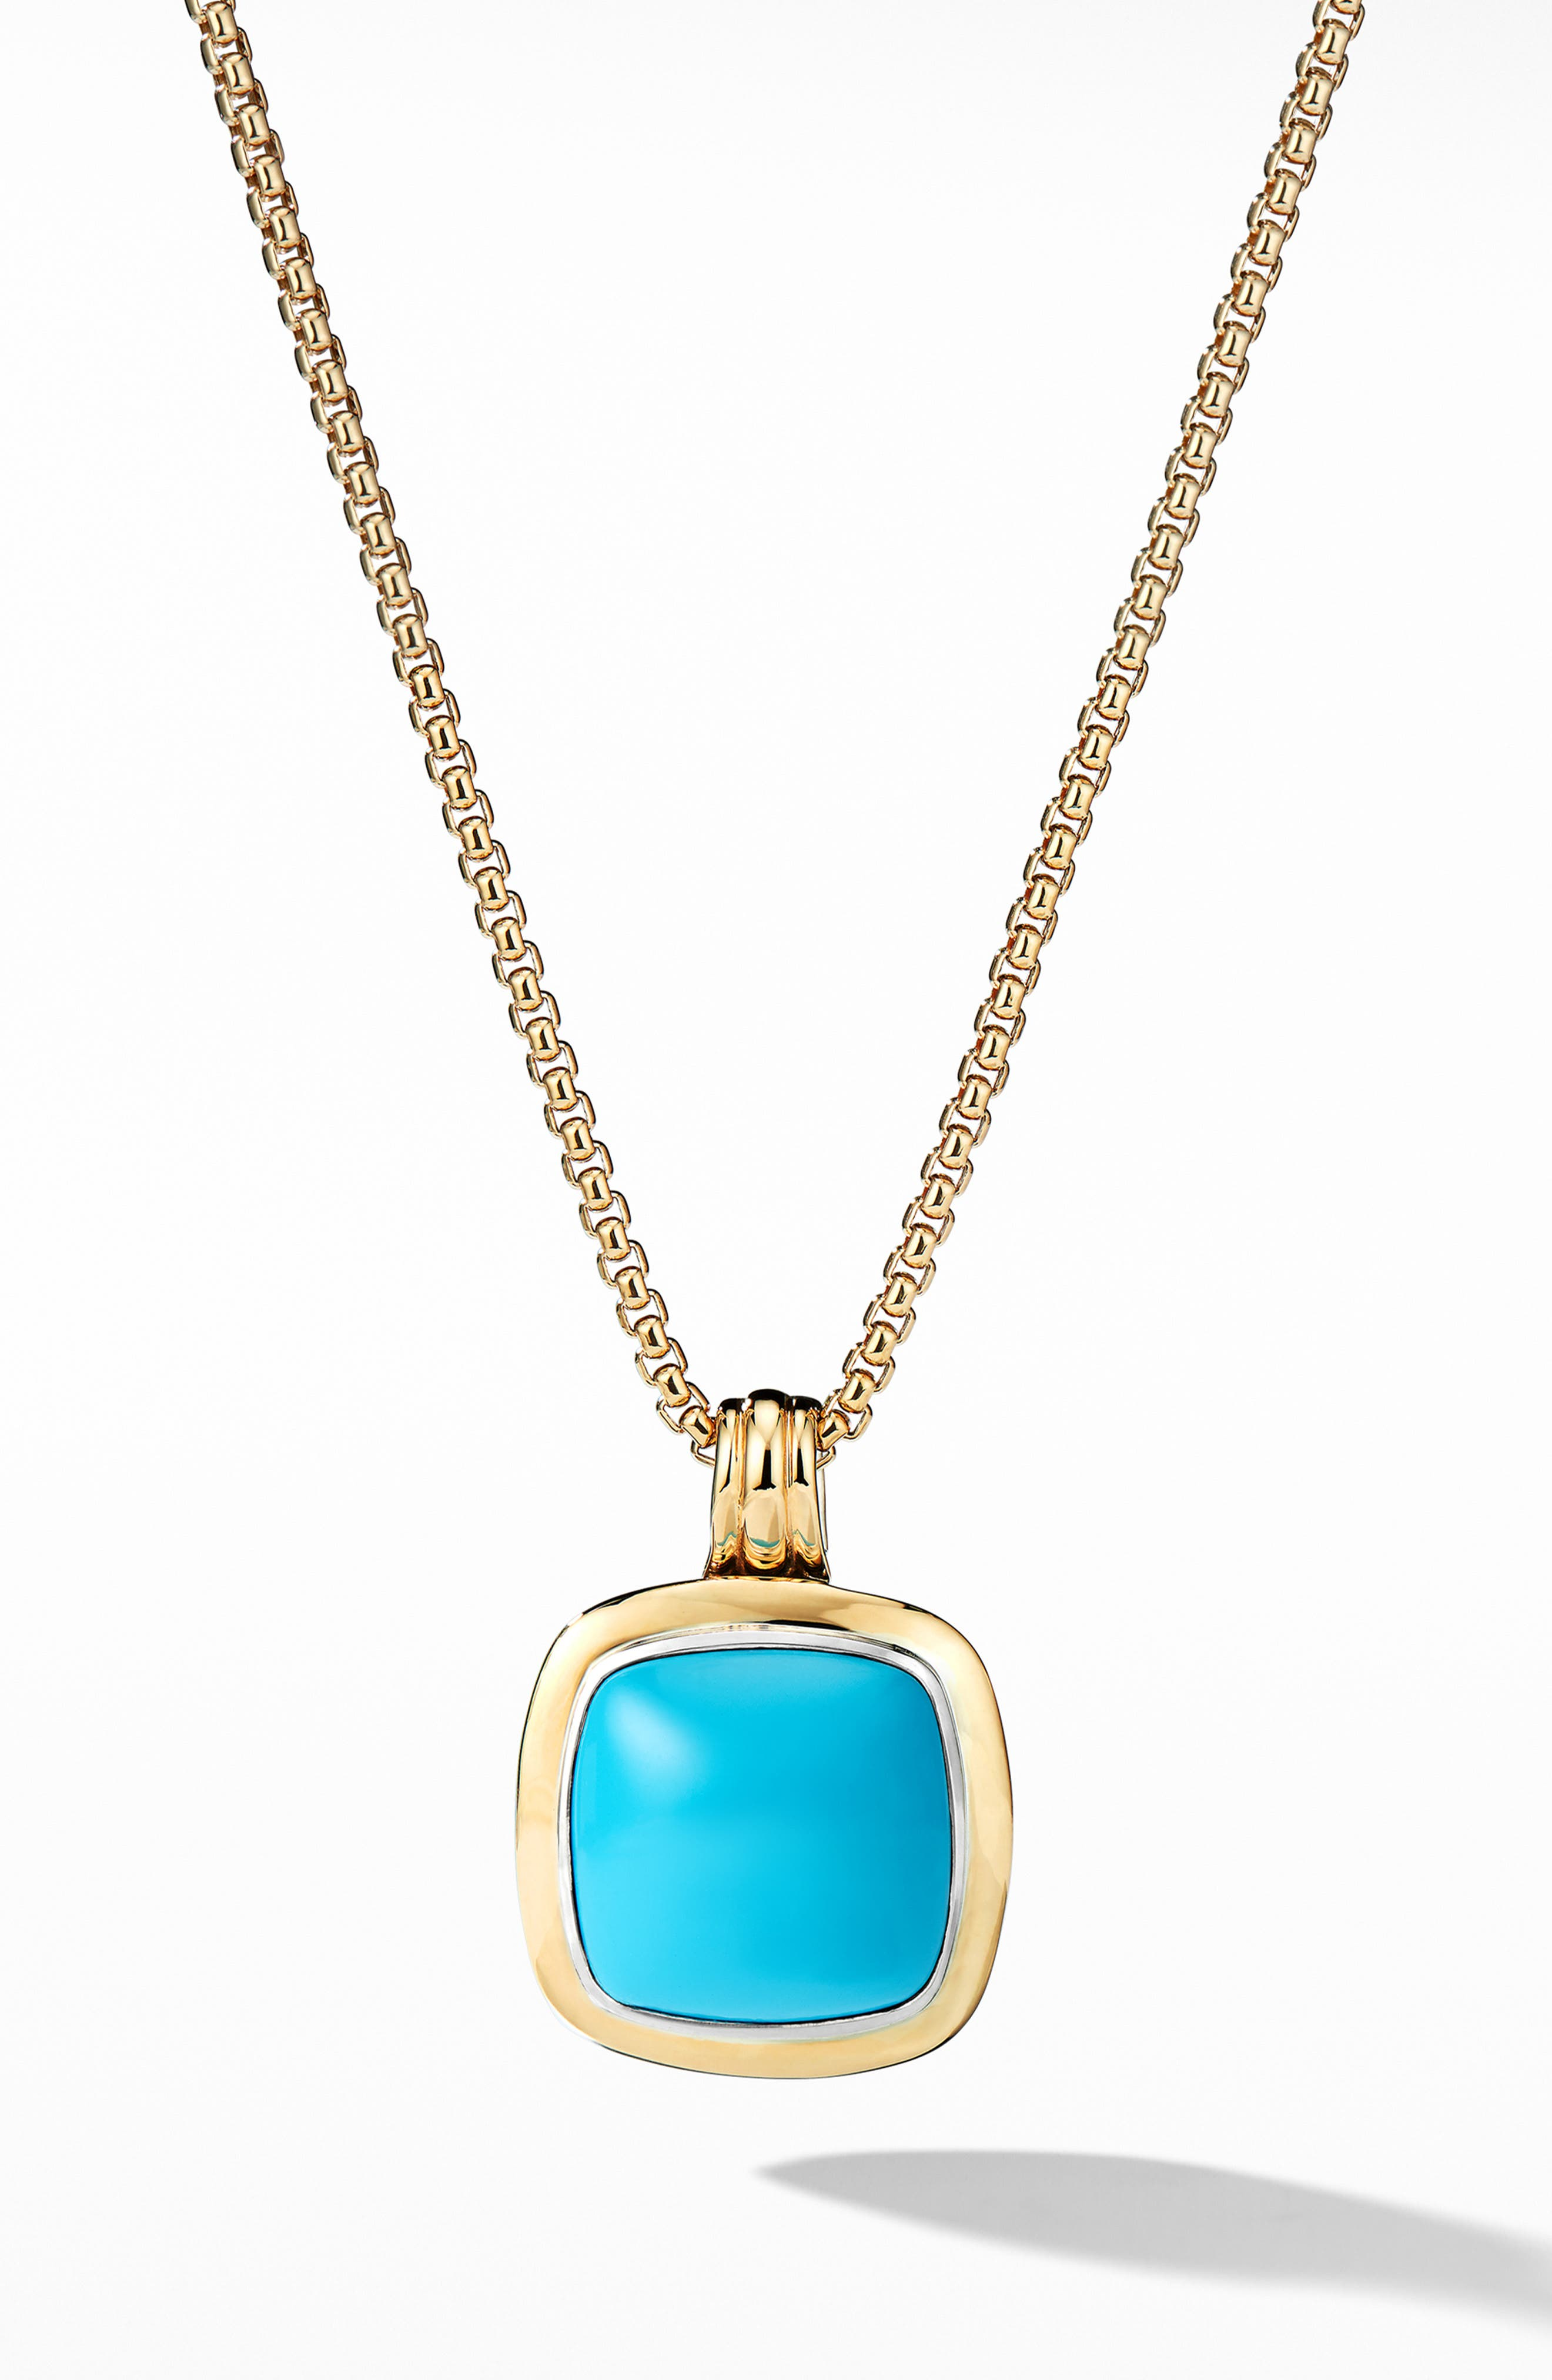 Albion<sup>®</sup> Pendant with 18k Gold,                             Main thumbnail 1, color,                             RECONSTITUTED TURQUOISE